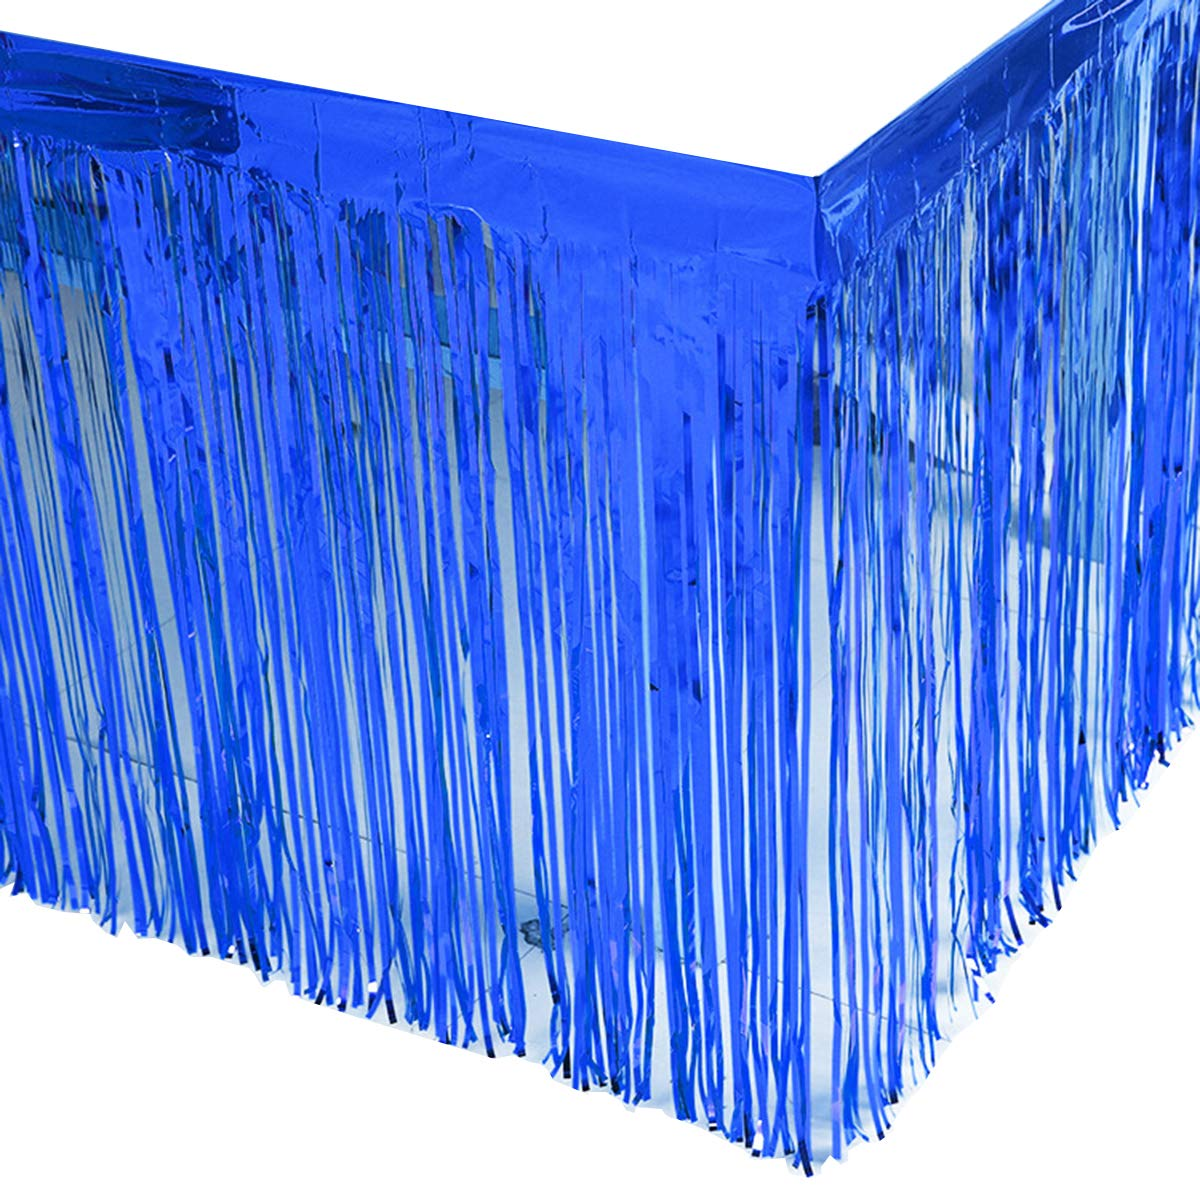 Leegleri 2 Pack Blue Metallic Foil Fringe Table Skirt Tinsel Party Plastic Table Skirt Banner for Parade Floats Mardi Gras Party Decoration(L108 inH 29in) by leegleri